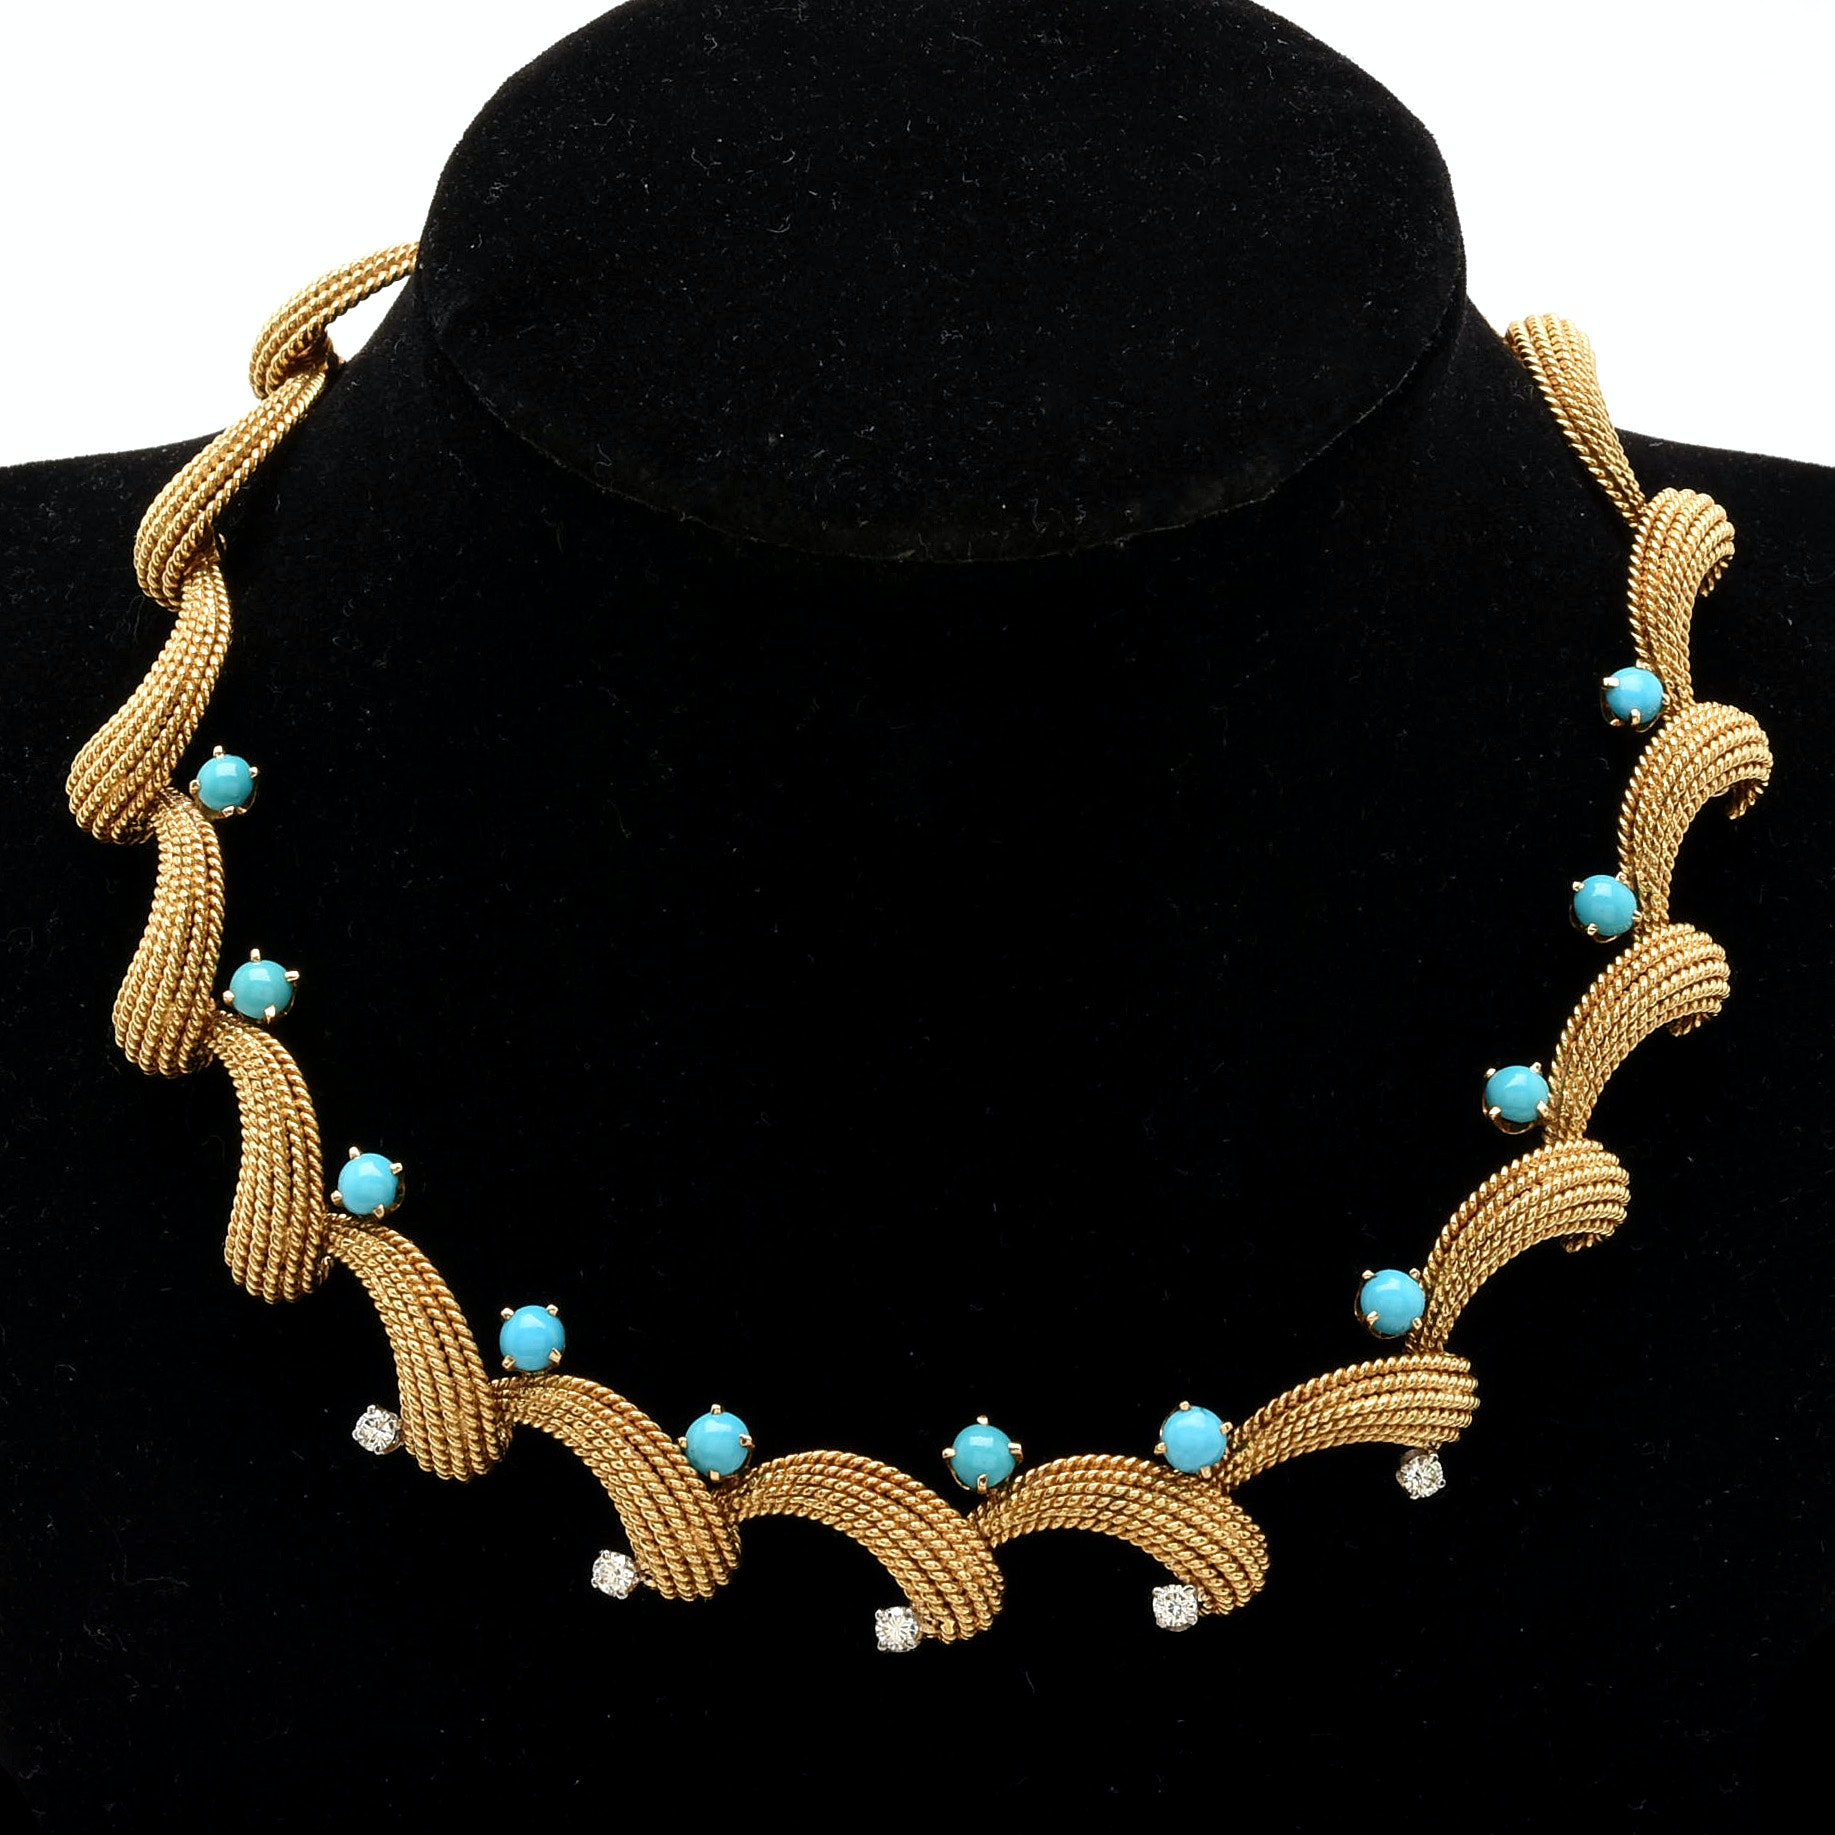 18K Yellow Gold Turquoise and Diamond Necklace